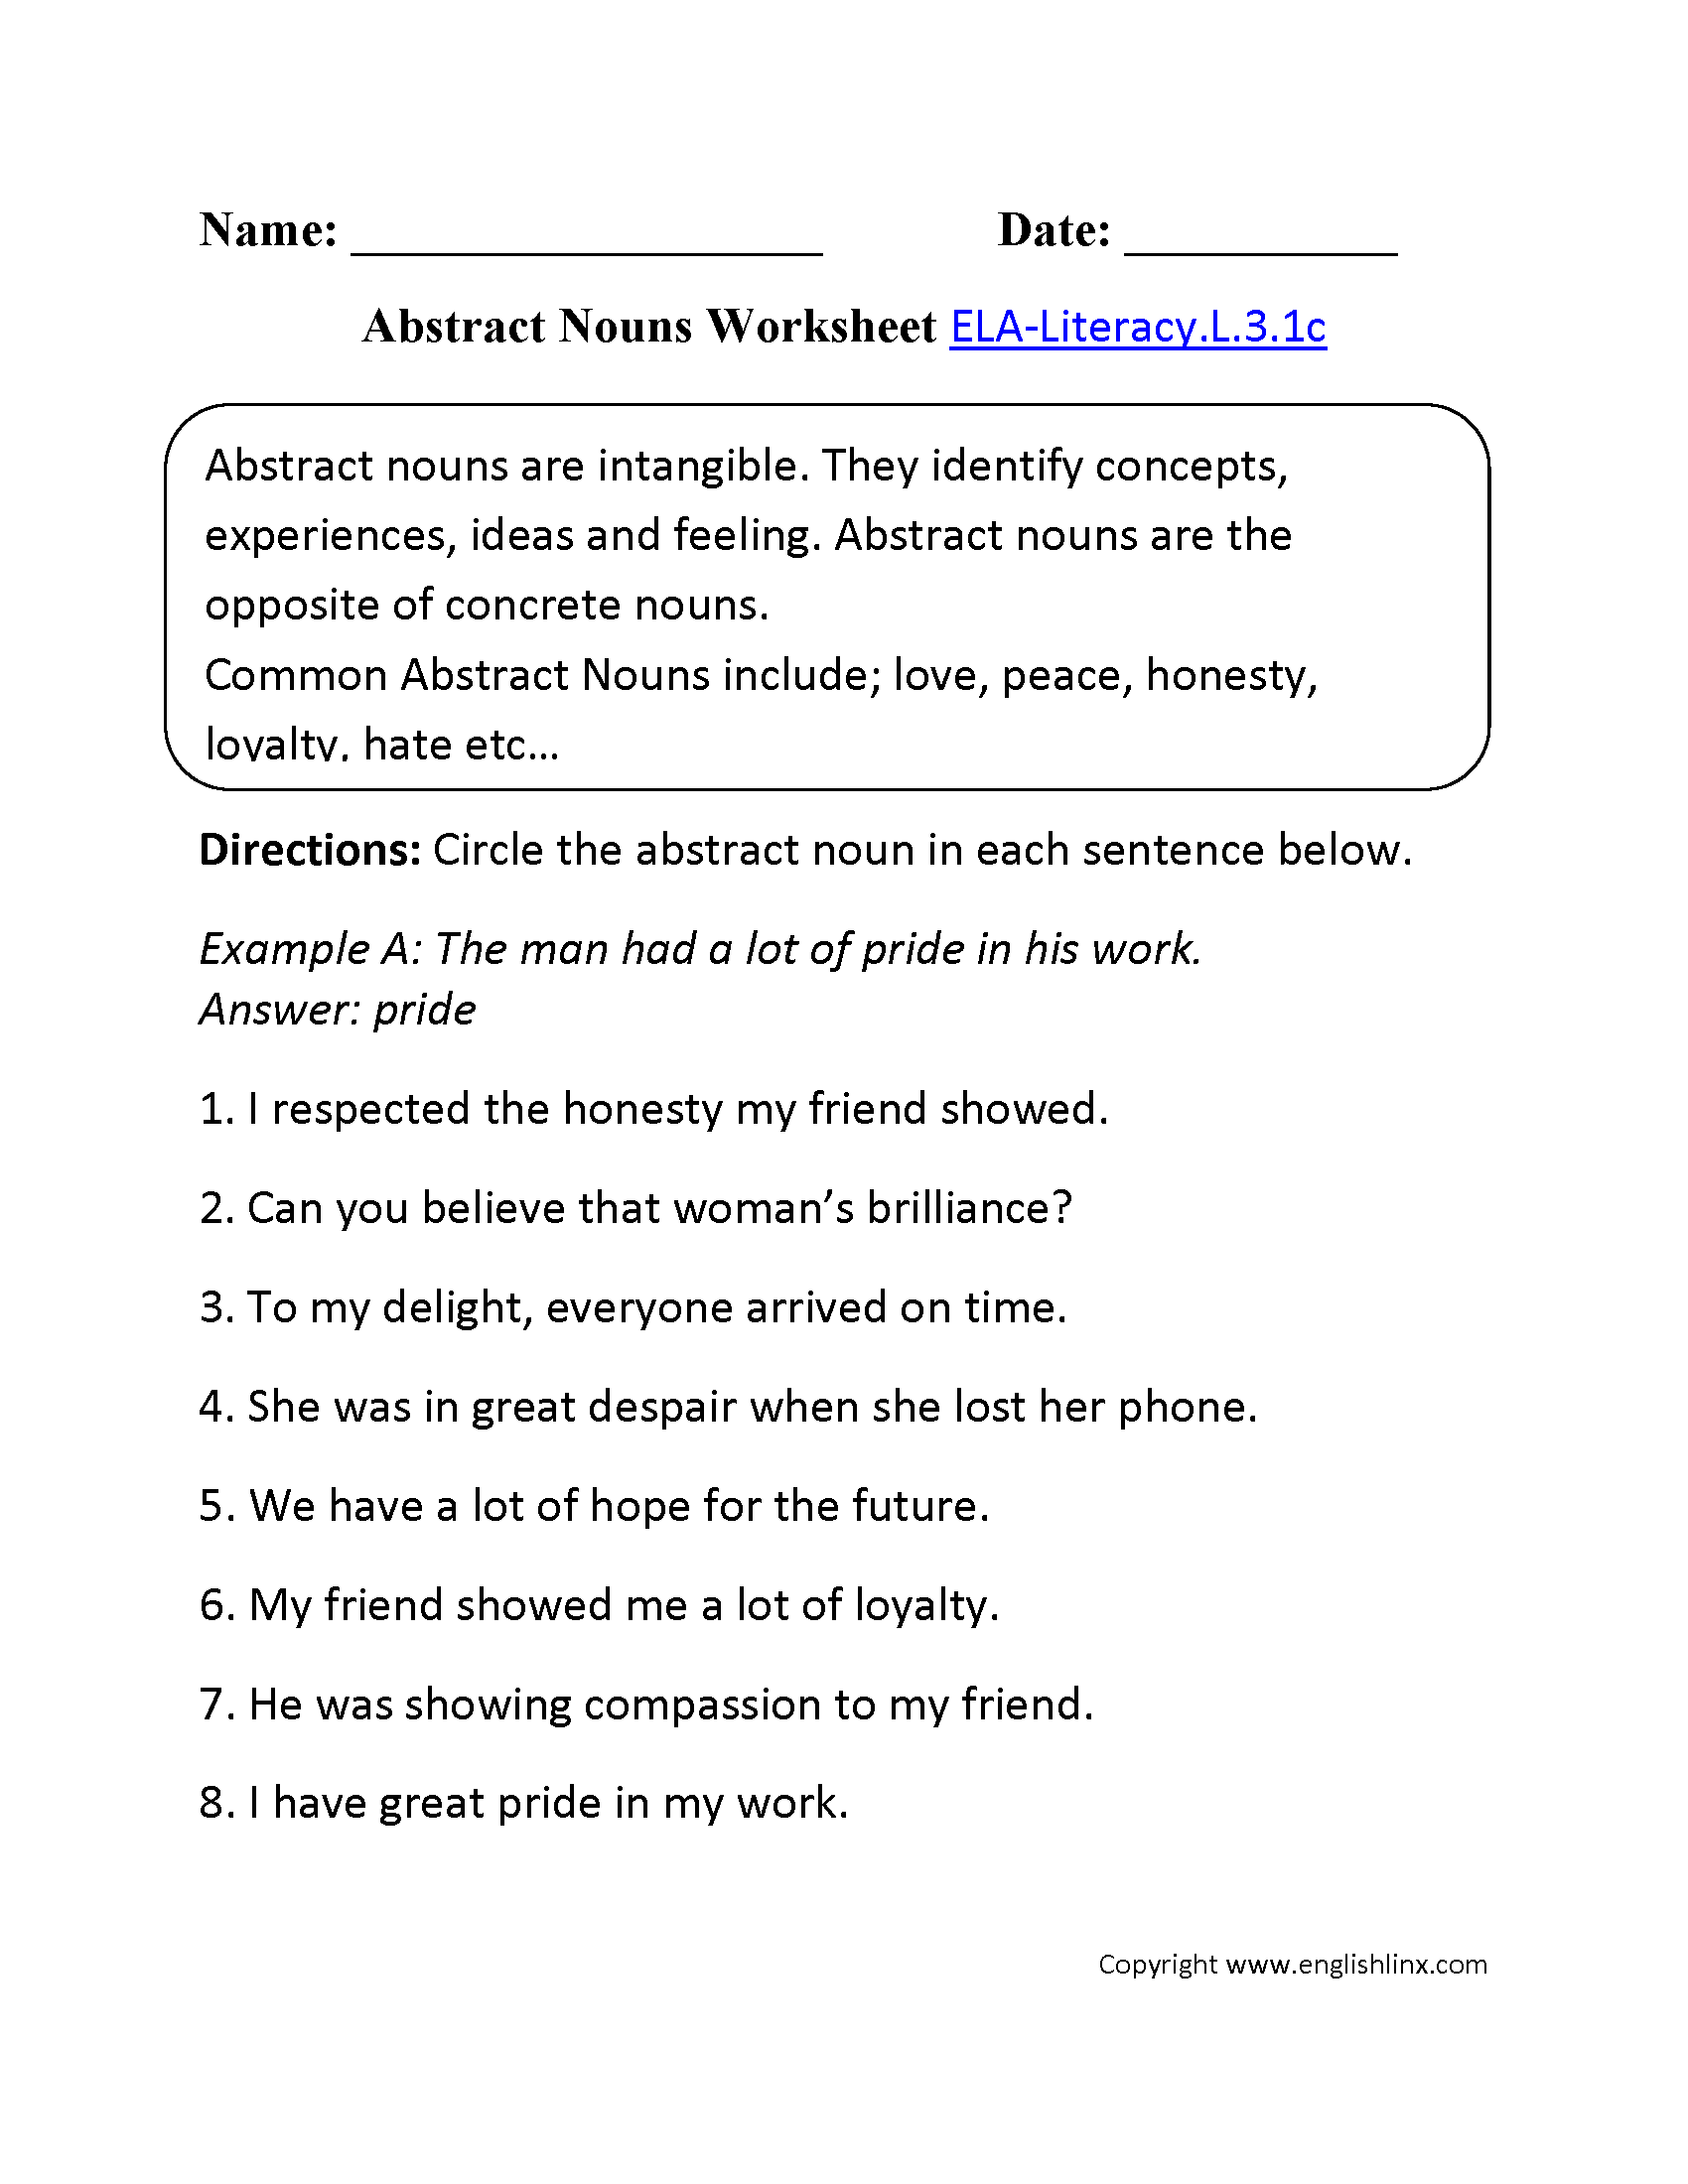 Worksheet Nouns Worksheet Grade 3 worksheets on nouns for grade 3 scalien collection of abstract worksheet bloggakuten